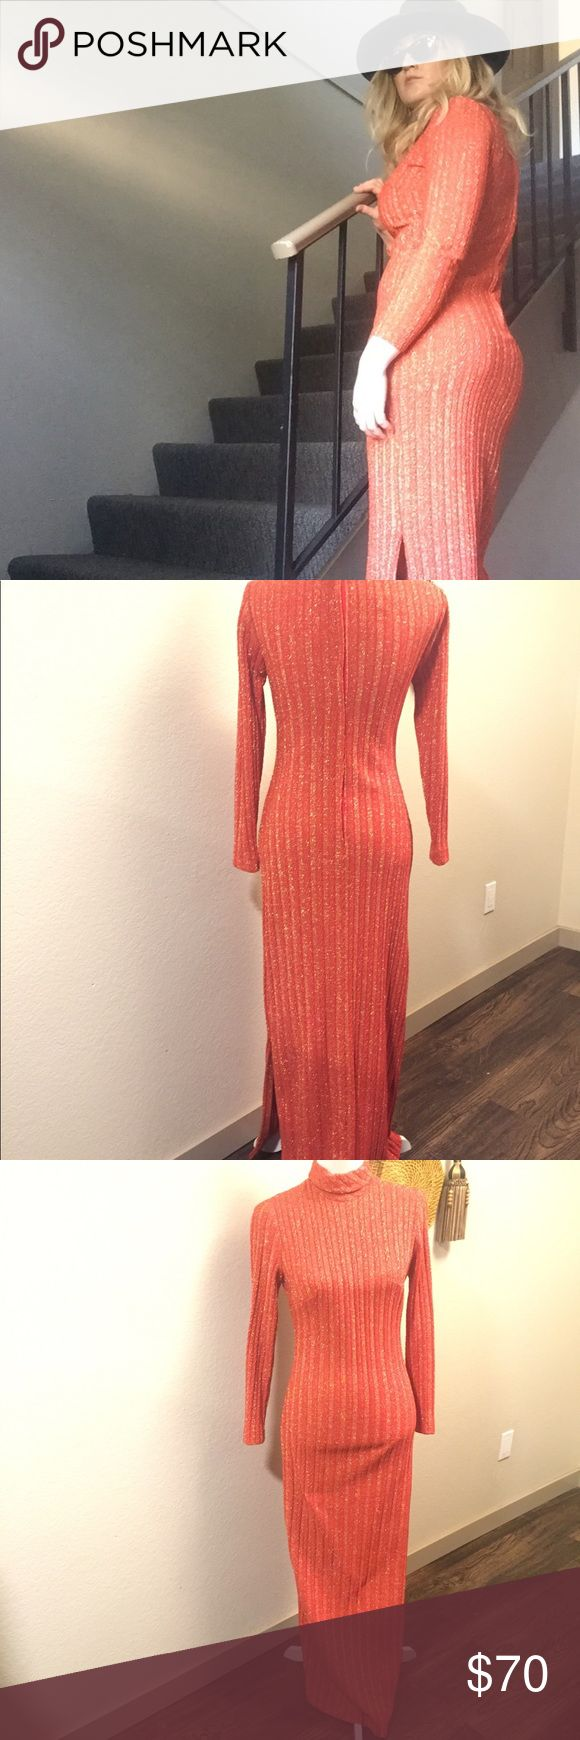 """Vintage Ribbed Long Sleeve Maxi Dress An amazing vintage long sleeve turtleneck dress. Orange with gold. Side of dress has leg slit. Zipper back. Excellent condition. Stretchy material, so fits many body types. Fits S-L.   Dimensions: Shoulder-Shoulder: 16"""" Pit-Sleeve: 16"""" Pit-Pit: 18"""" Length: 55"""" Dresses Maxi"""